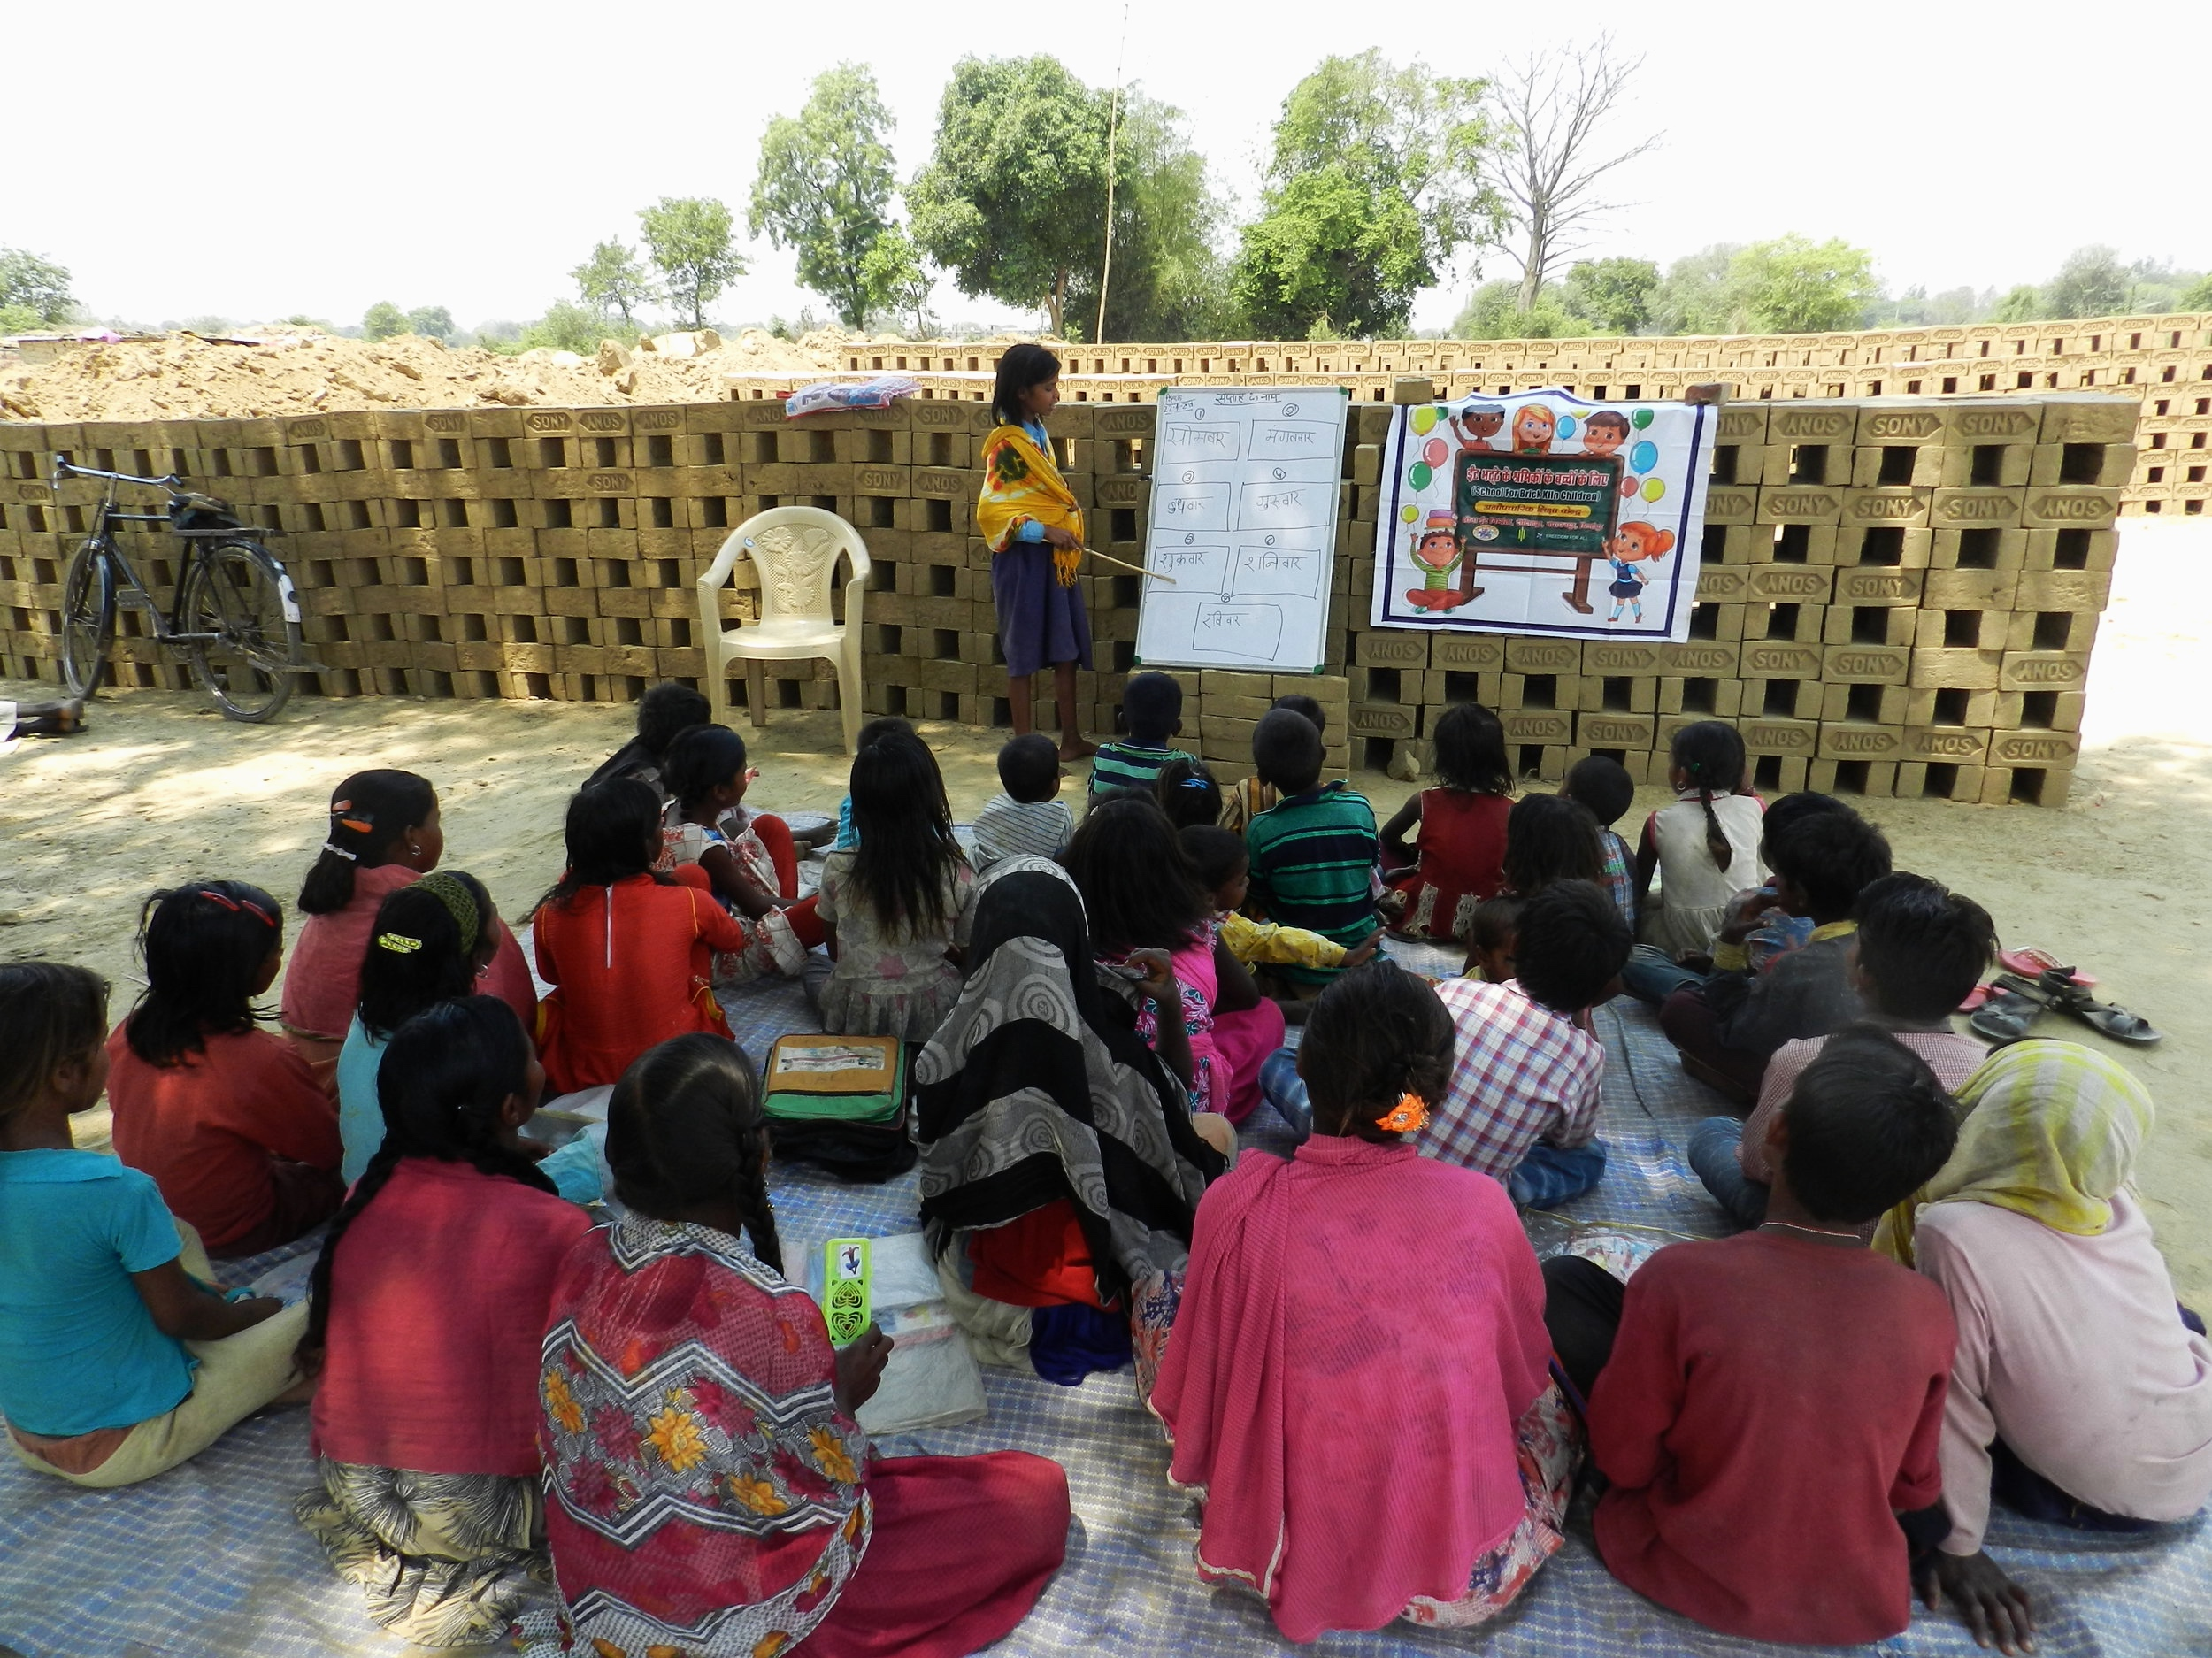 Children who used to work as slaves are now attending classes at one of MSEMVS' transitional schools.